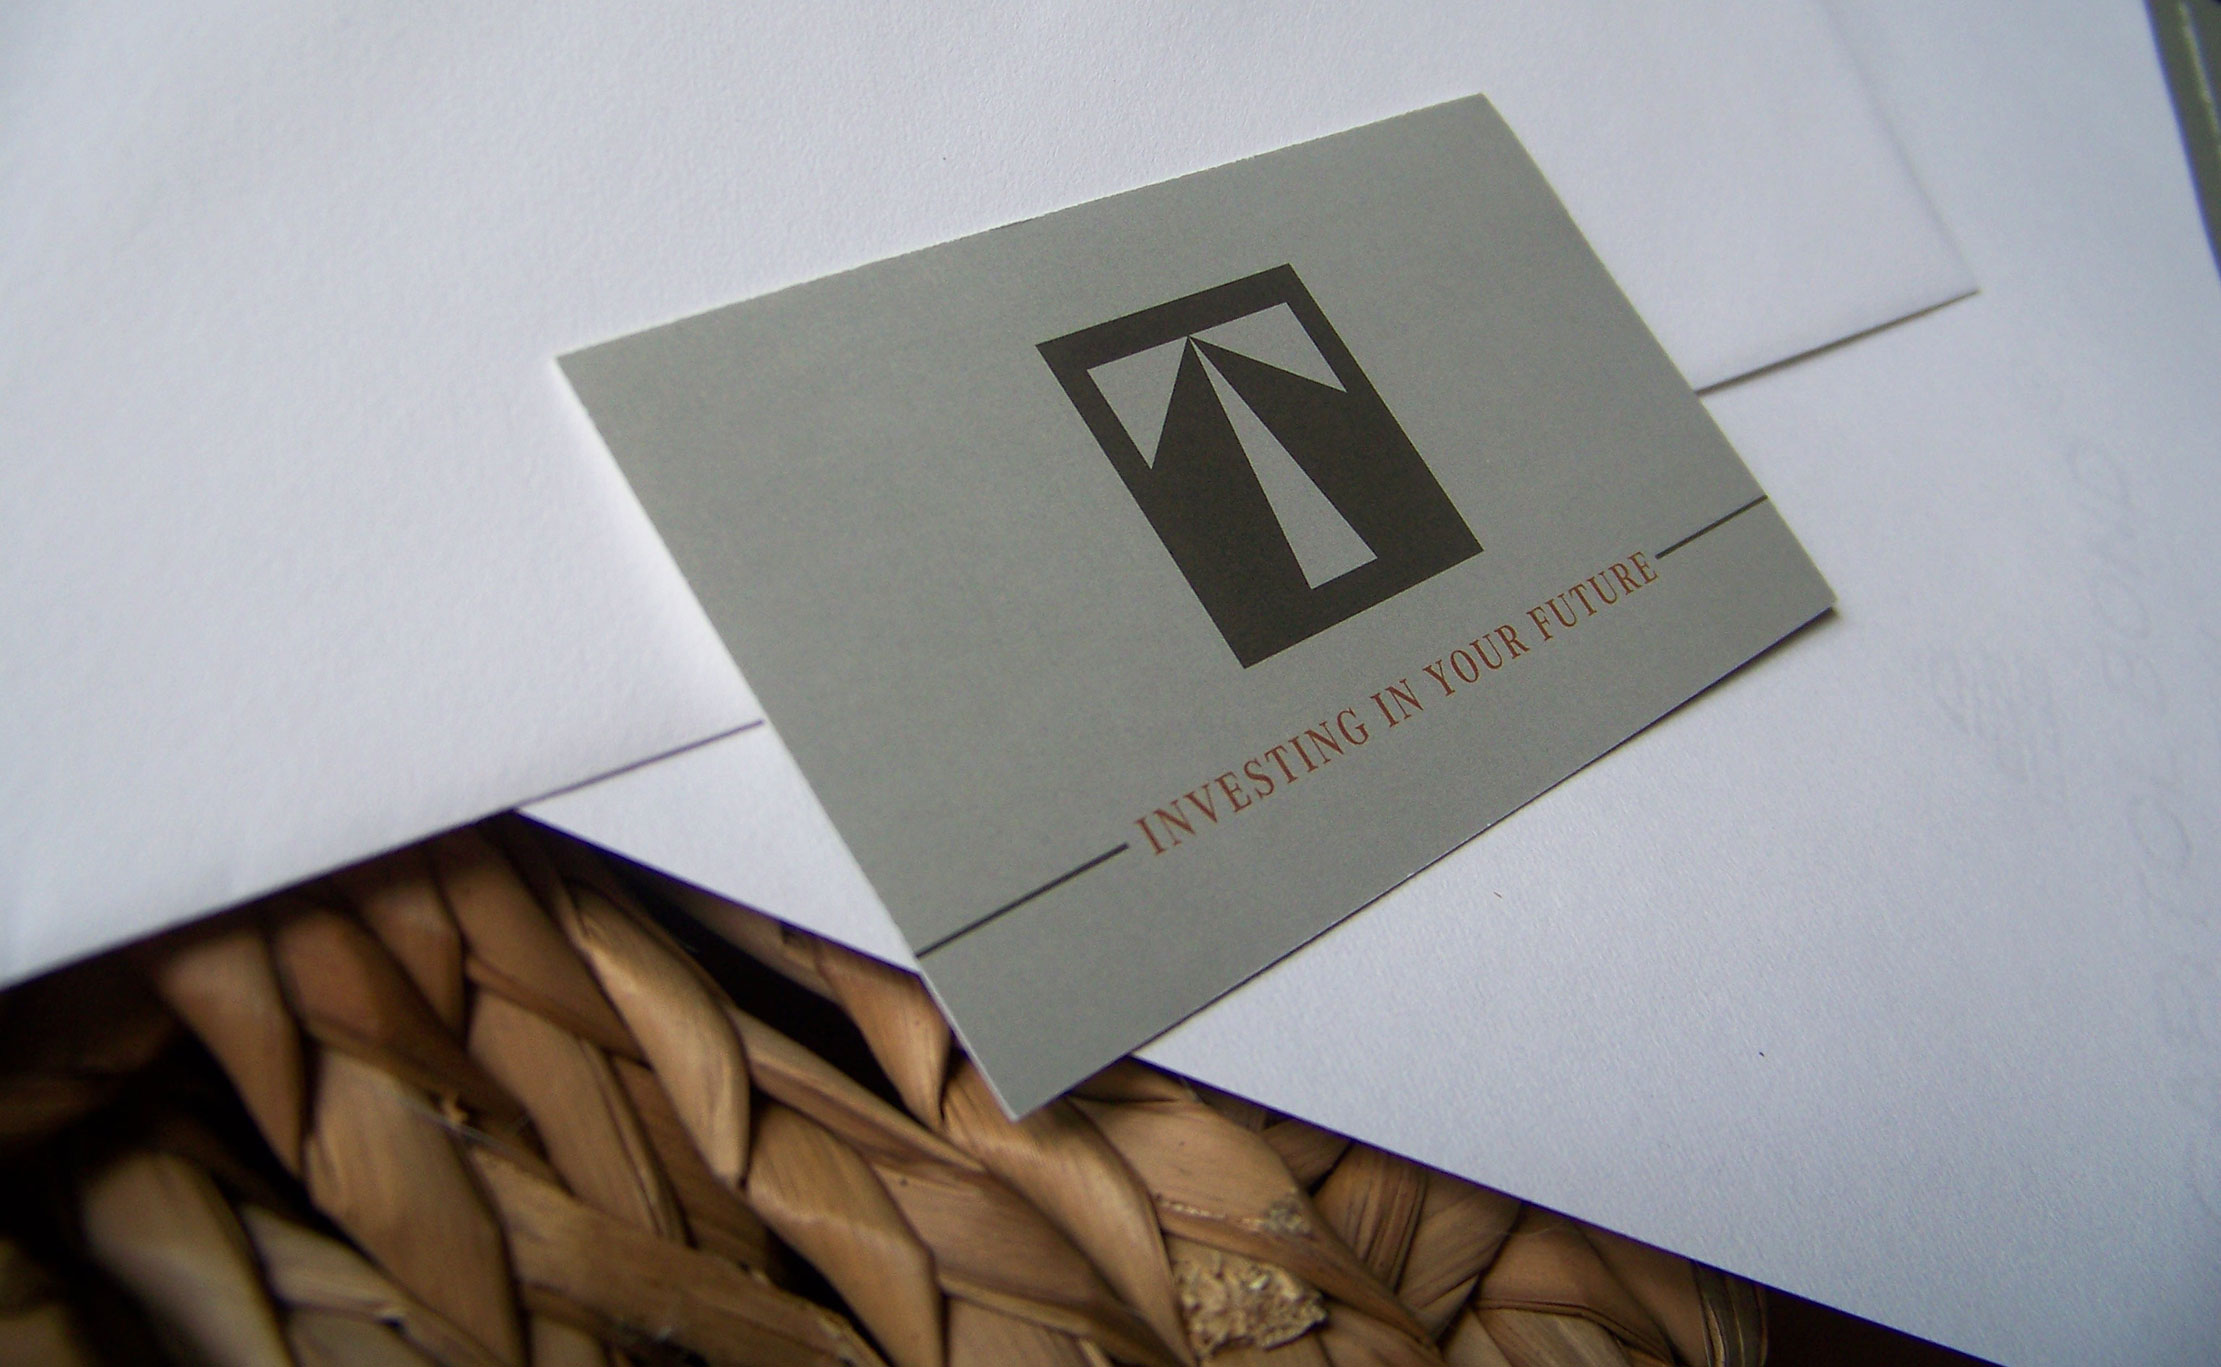 Thorsen Wealth Management Branding Business Card Design by Just Make Things